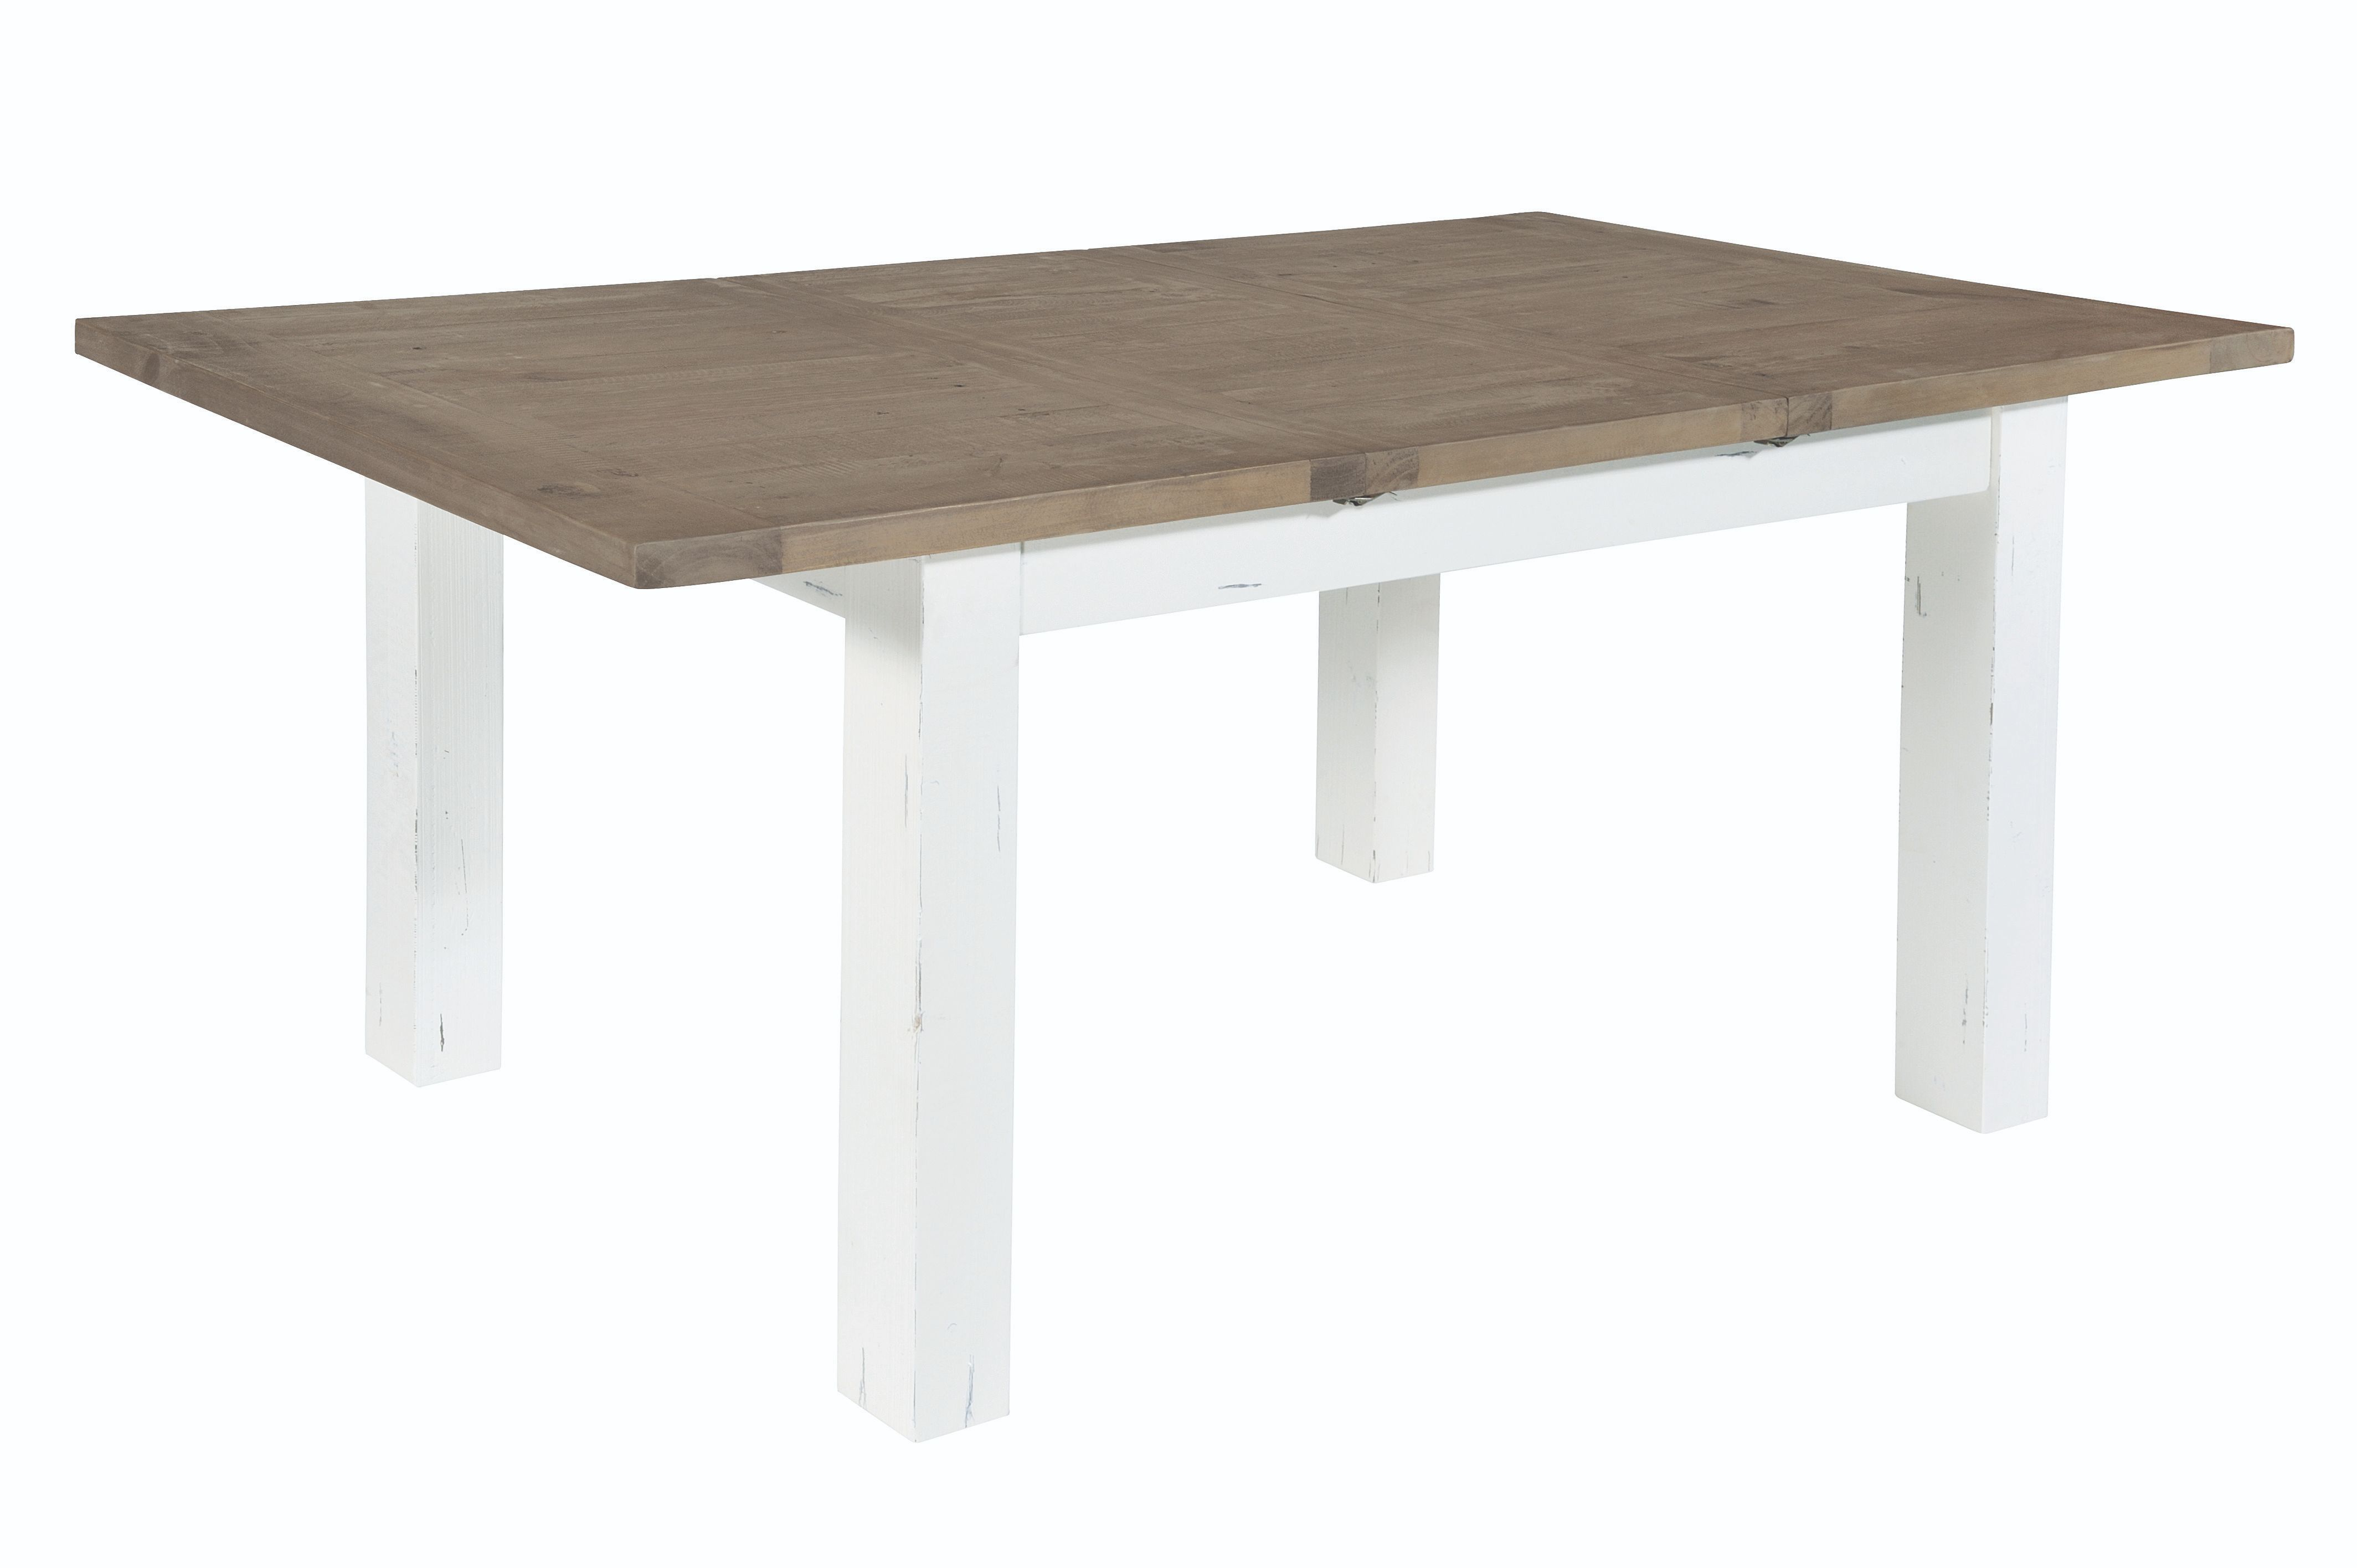 PURBECK 180 EXTENDING DINING TABLE Distressed Paint & Driftwood